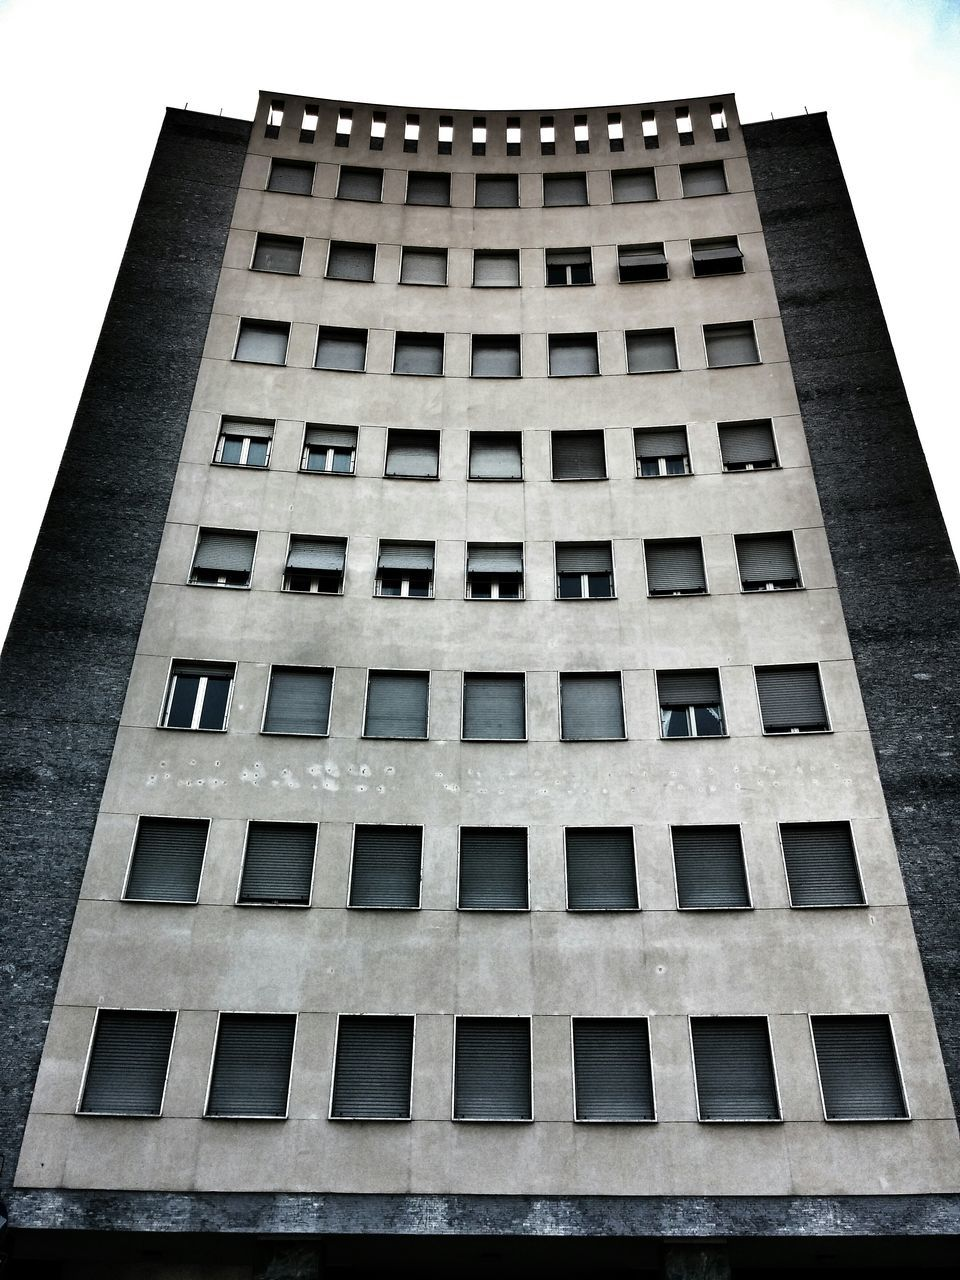 architecture, built structure, low angle view, window, building exterior, pattern, outdoors, day, no people